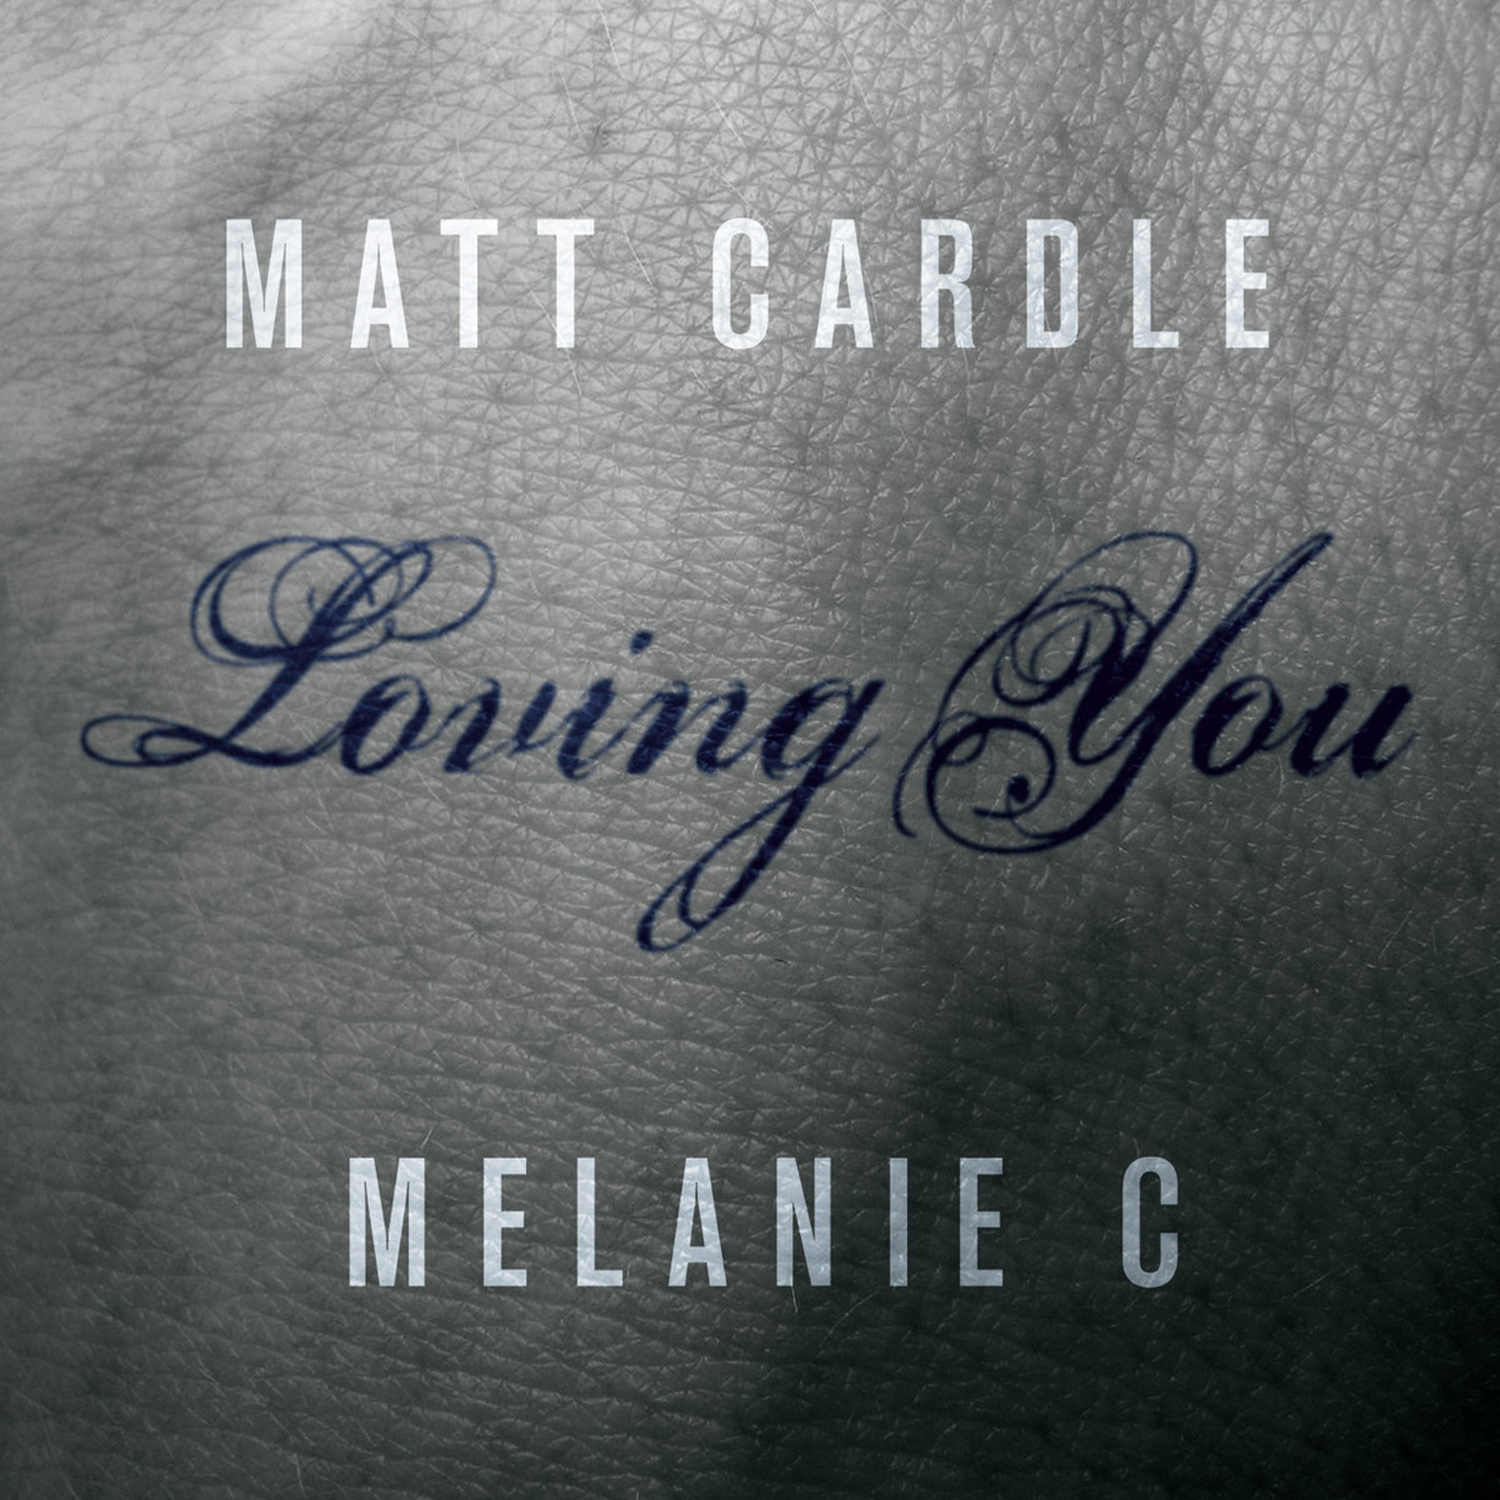 Matt Cardle & Melanie C – Te Amo (Spanish Version)